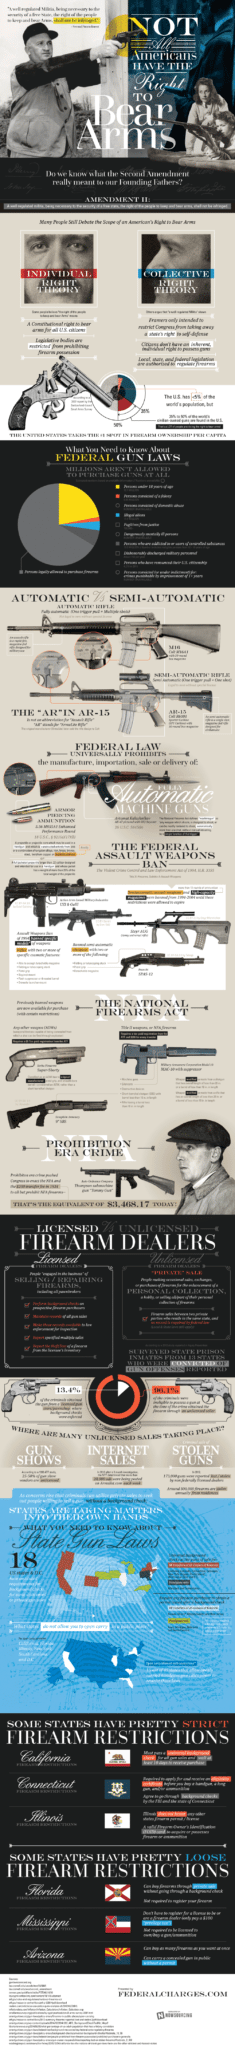 federal-charges-guns